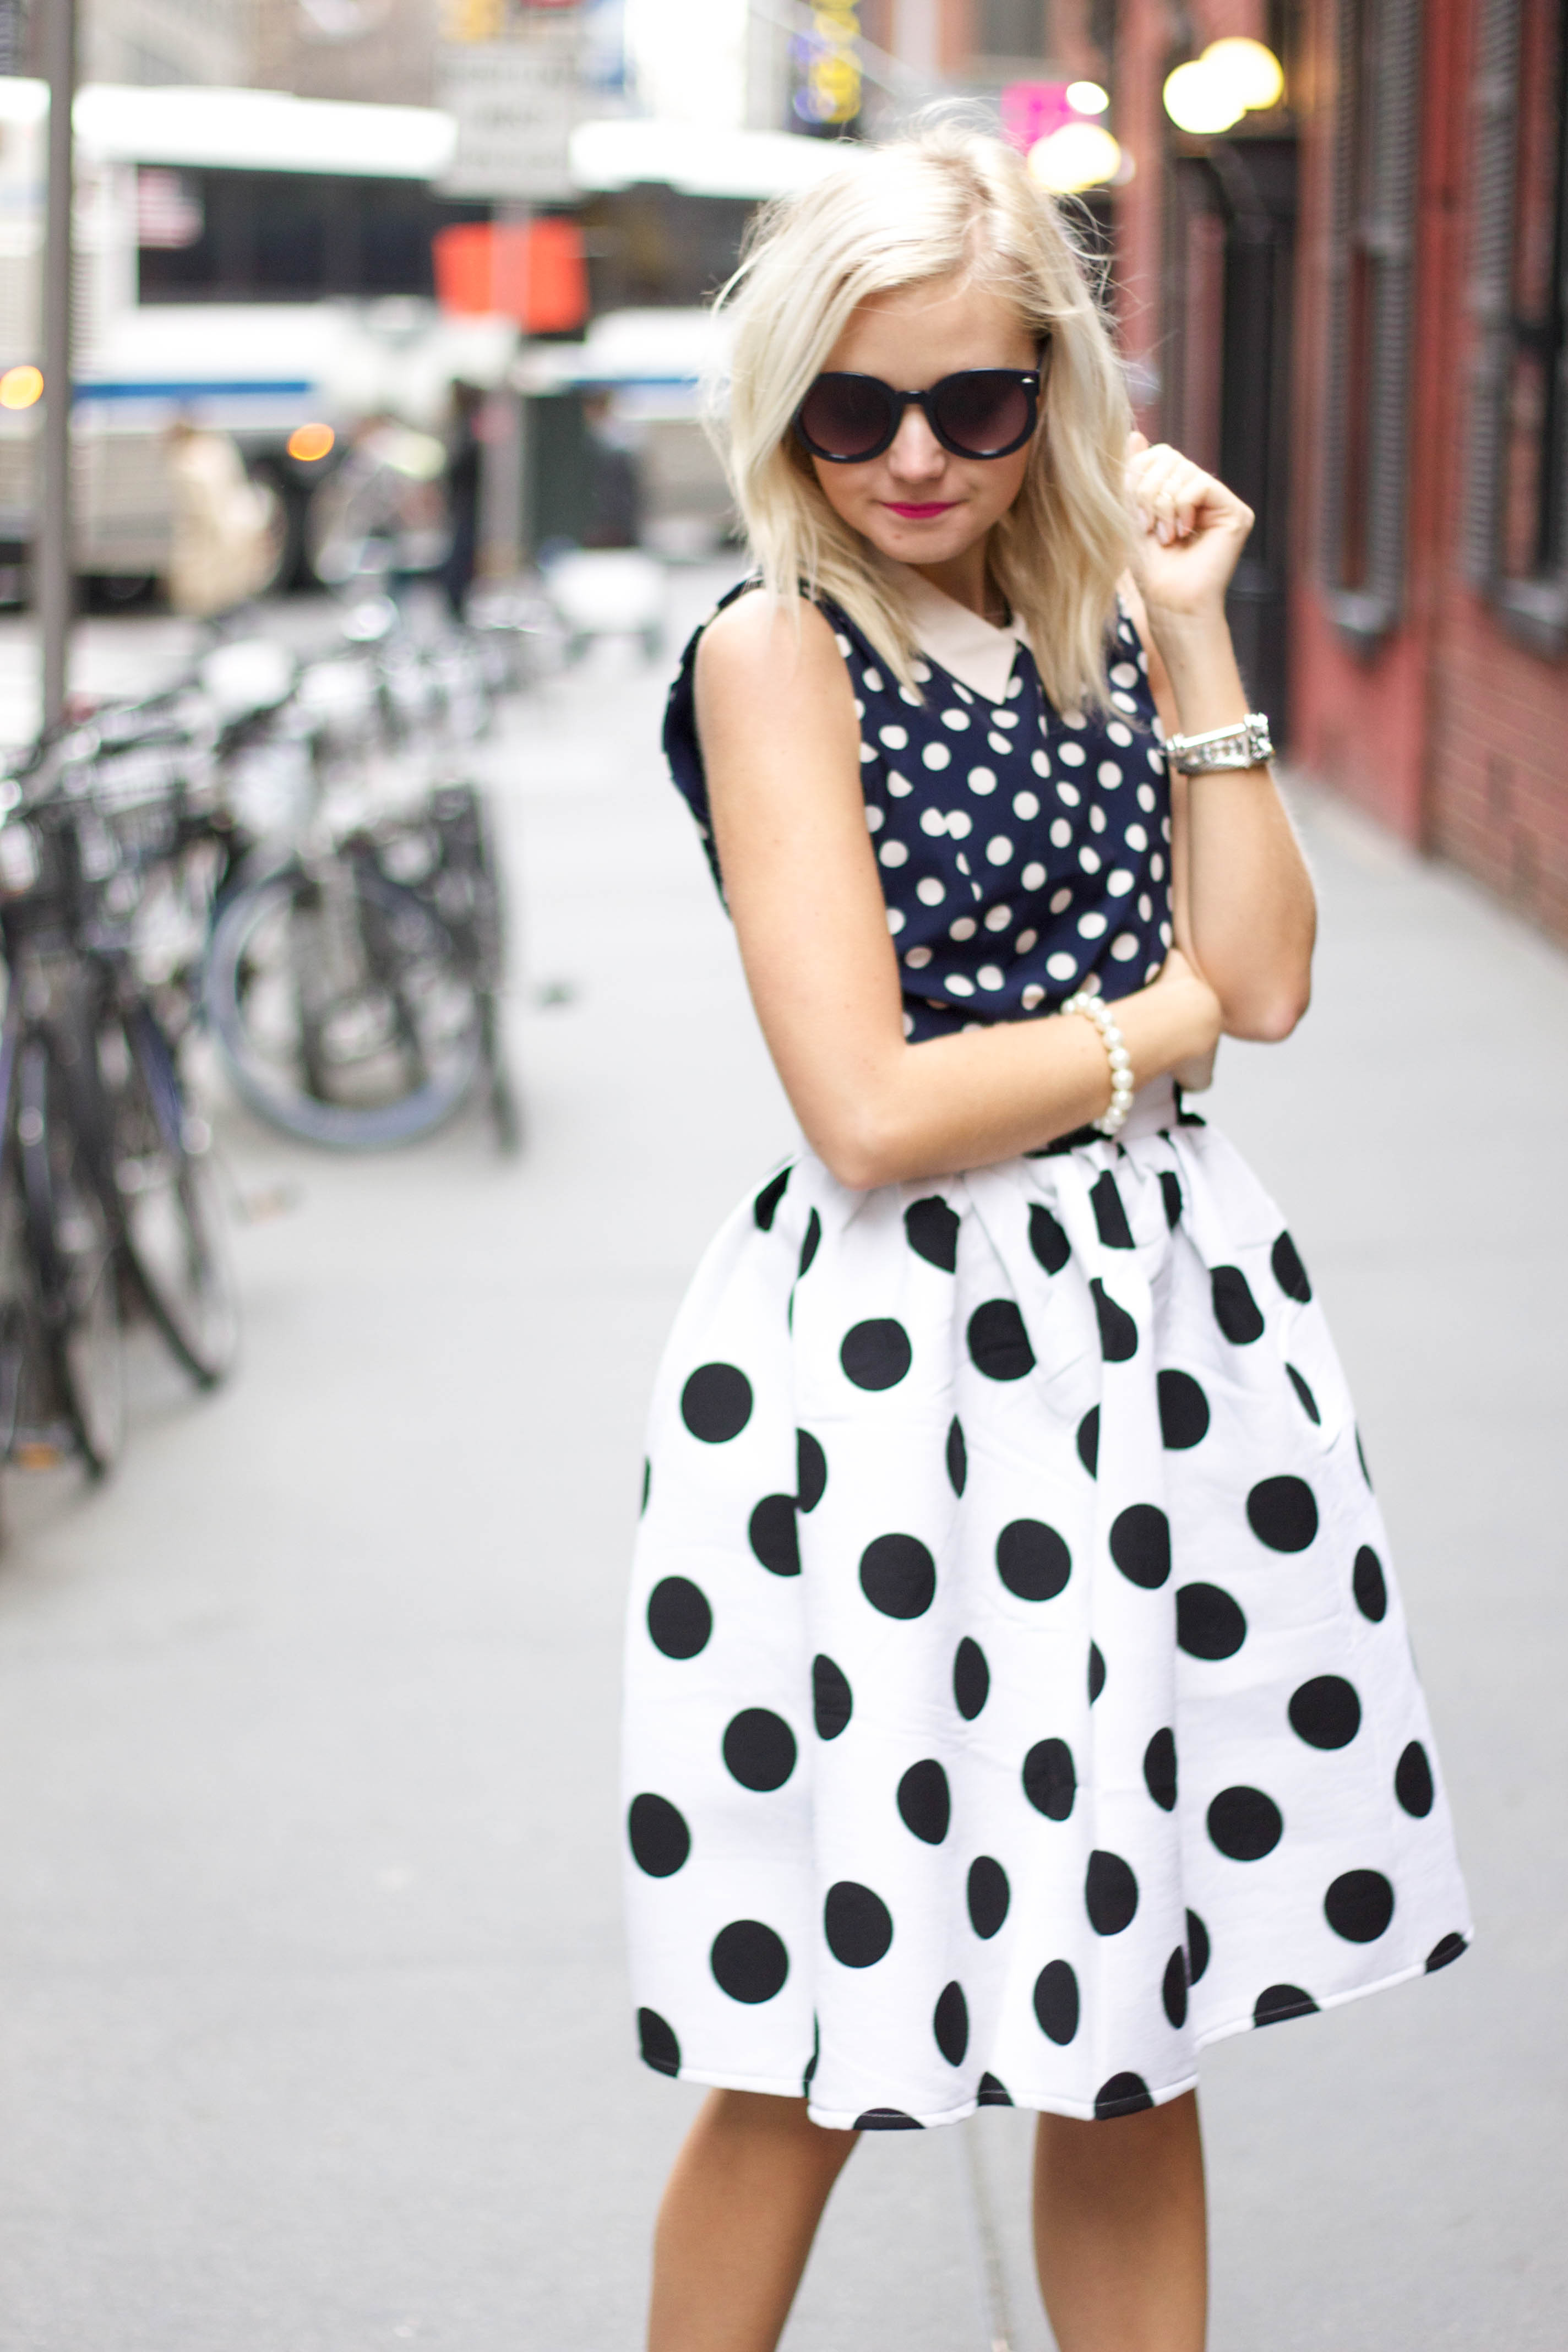 Fashion Chain Is On Rewind Mode With Polka Dots